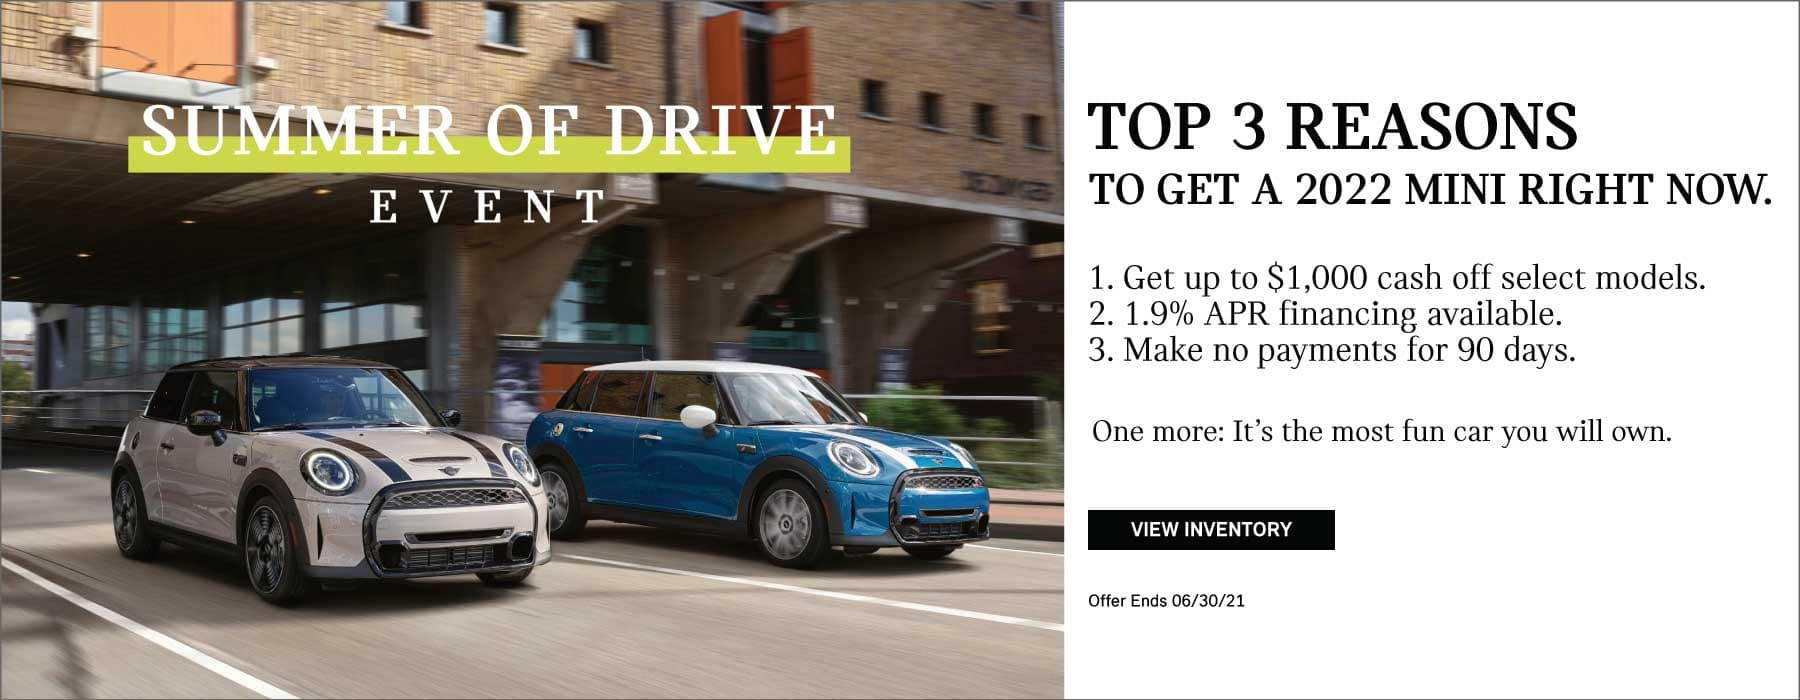 Top 3 reasons to get a 2022 MINI right now. 1: get up to $1,000 cash off select models. 2: 1.9% APR financing available. 3: Make no payments for 90 days. One more: Its the most fun car you will ever own. Valid through 06/30/21. Click to view inventory. See dealer for full details. Image shows a black and white 2022 MINI Cooper S Hardtop 2 Door and a blue and white 2022 MINI Cooper S Hardtop 4 Door driving down the street in an urban area. MINIs Summer of Drive logo is placed over the image.